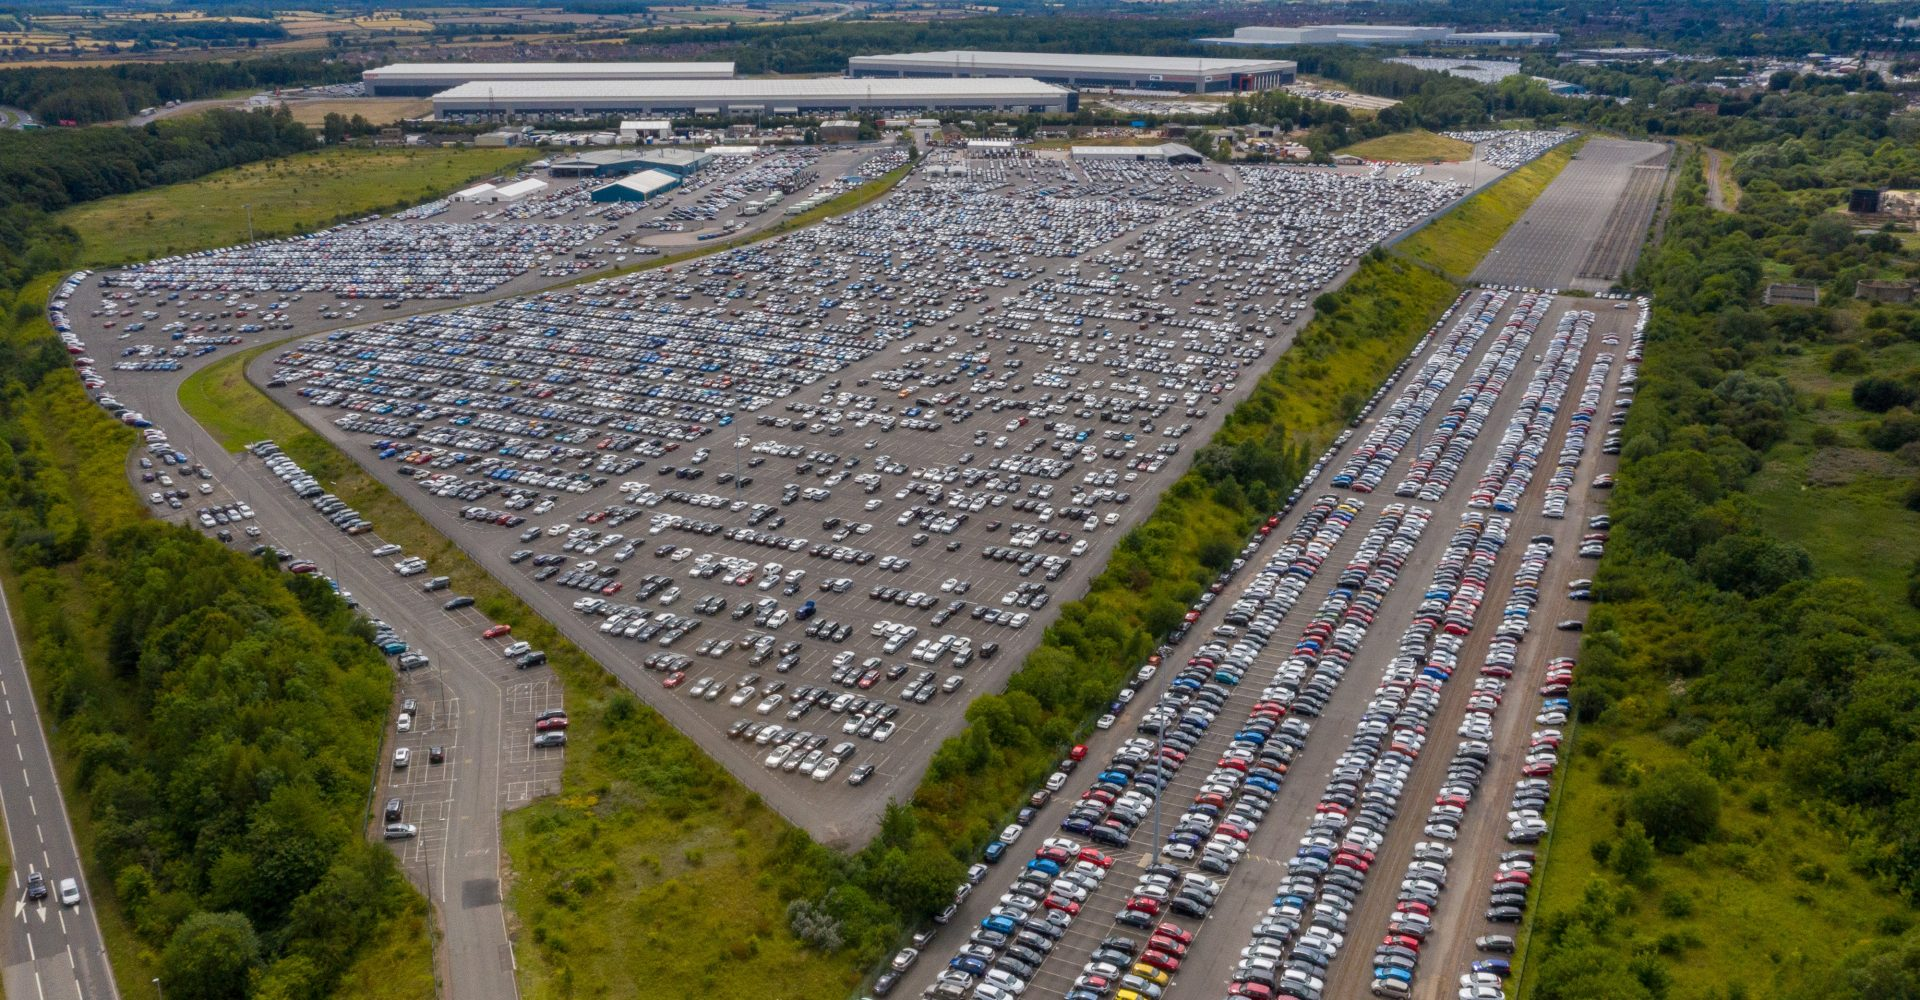 Thousands of cars put into storage due to pandemic